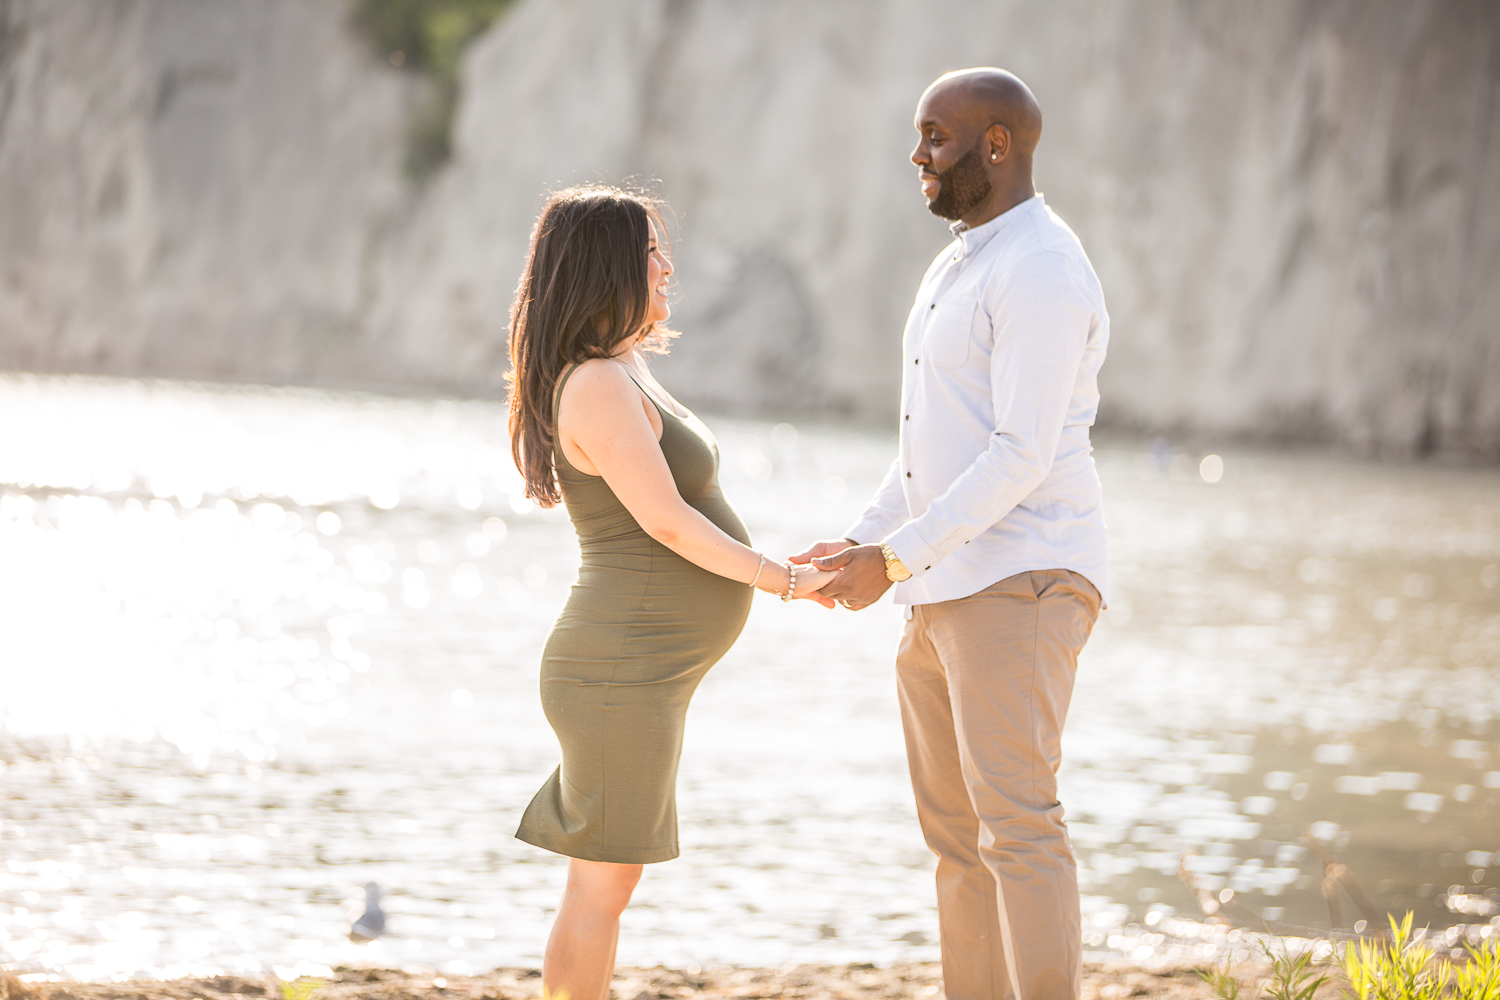 Scarborough-Bluffs-Maternity-Engagement-Shoot-0007.jpg